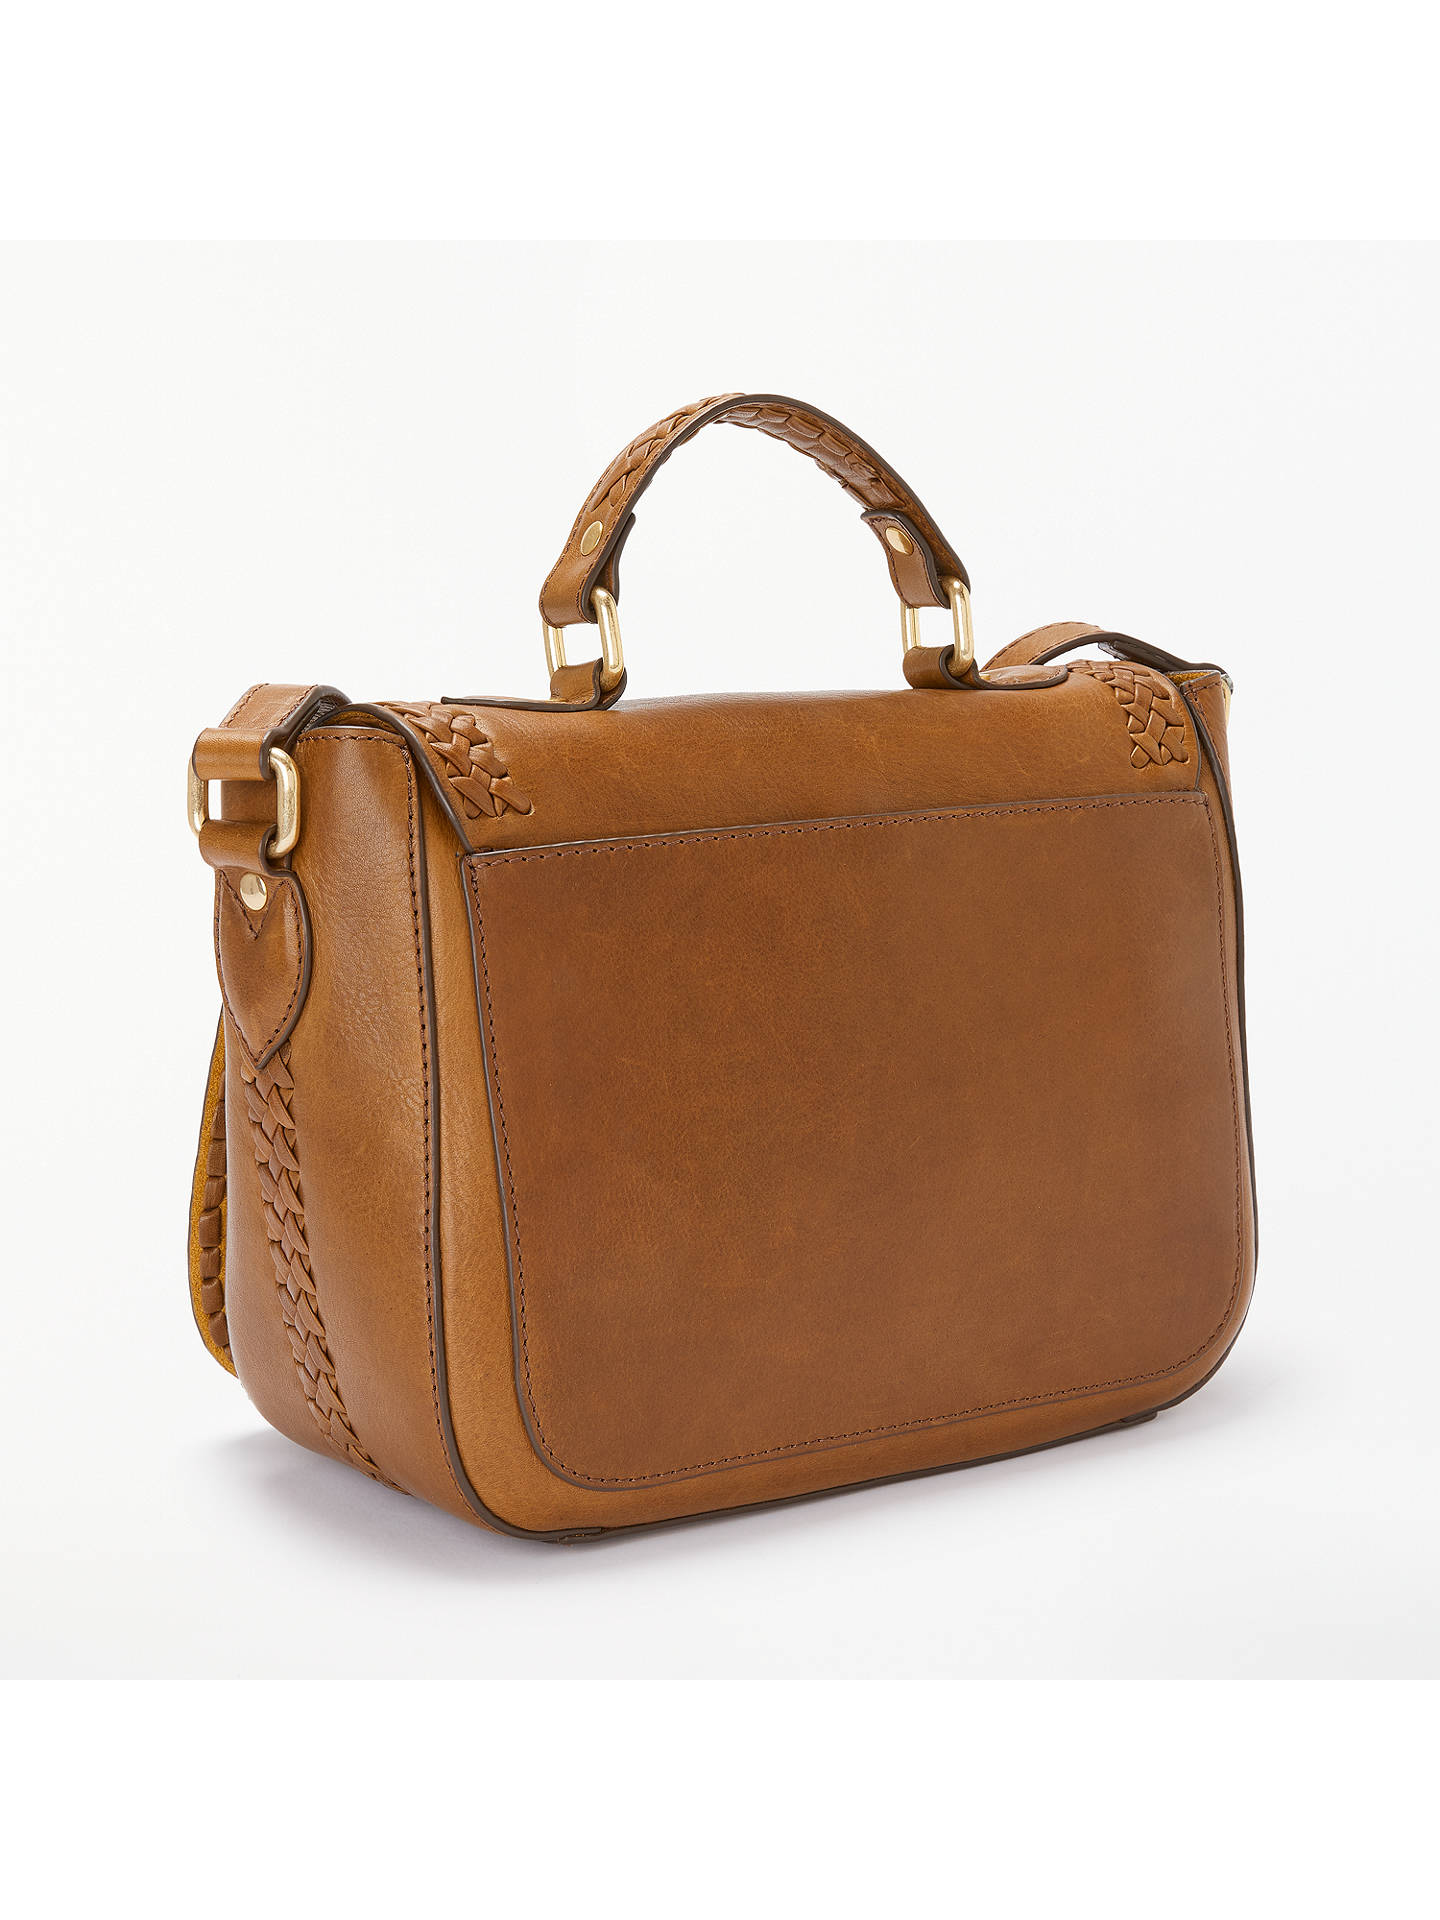 5226e12f67f ... Buy AND OR Isabella Leather Whipstitch Saddle Bag